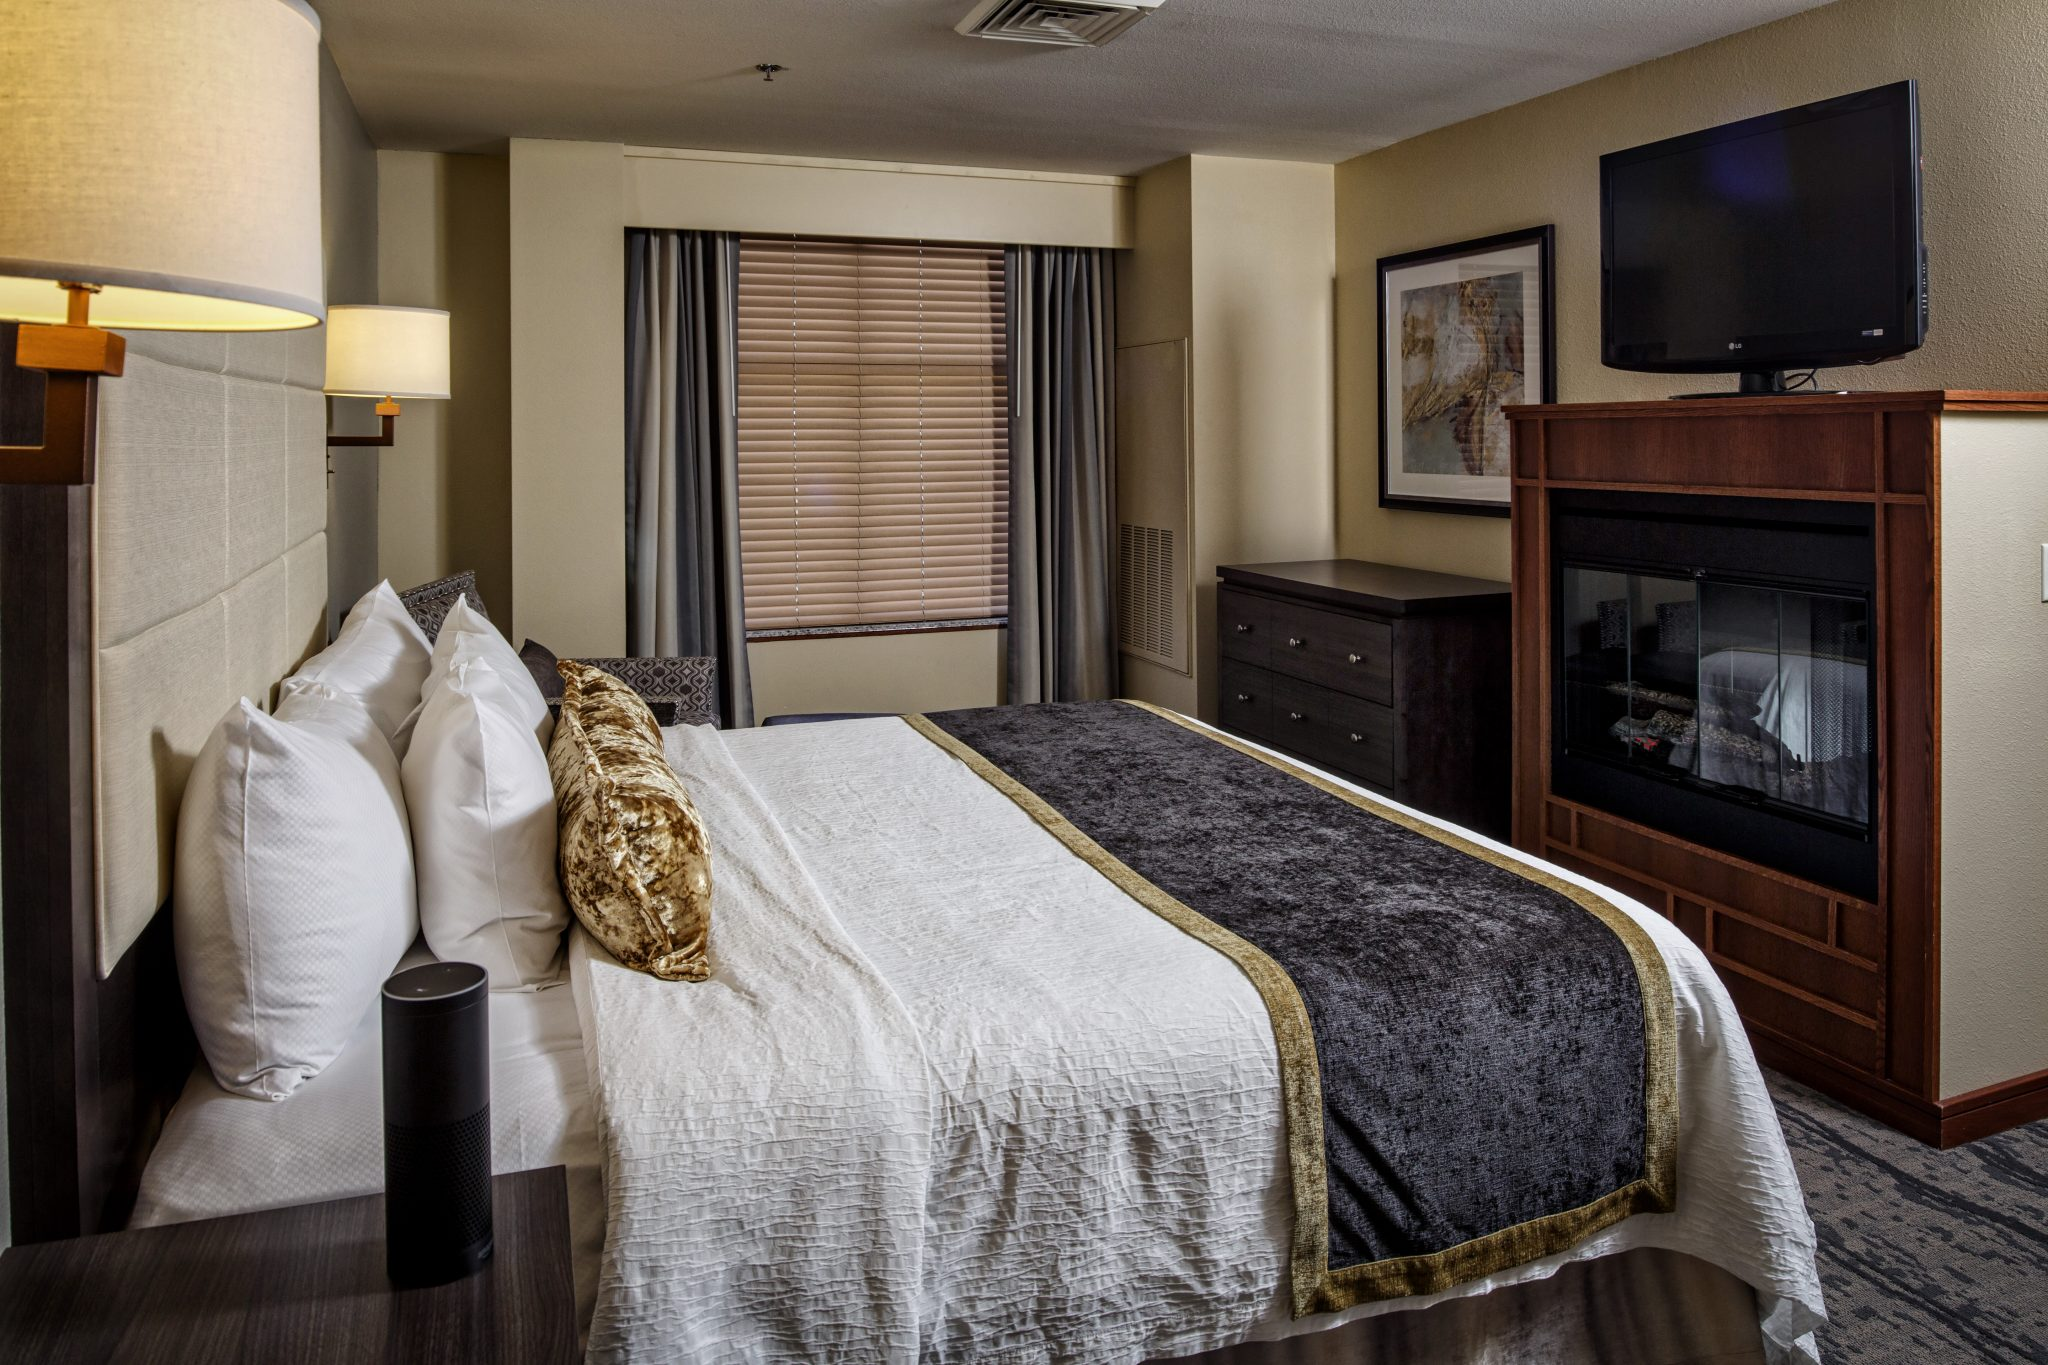 A Quick Overview of Our Amenities   CopperLeaf Hotel